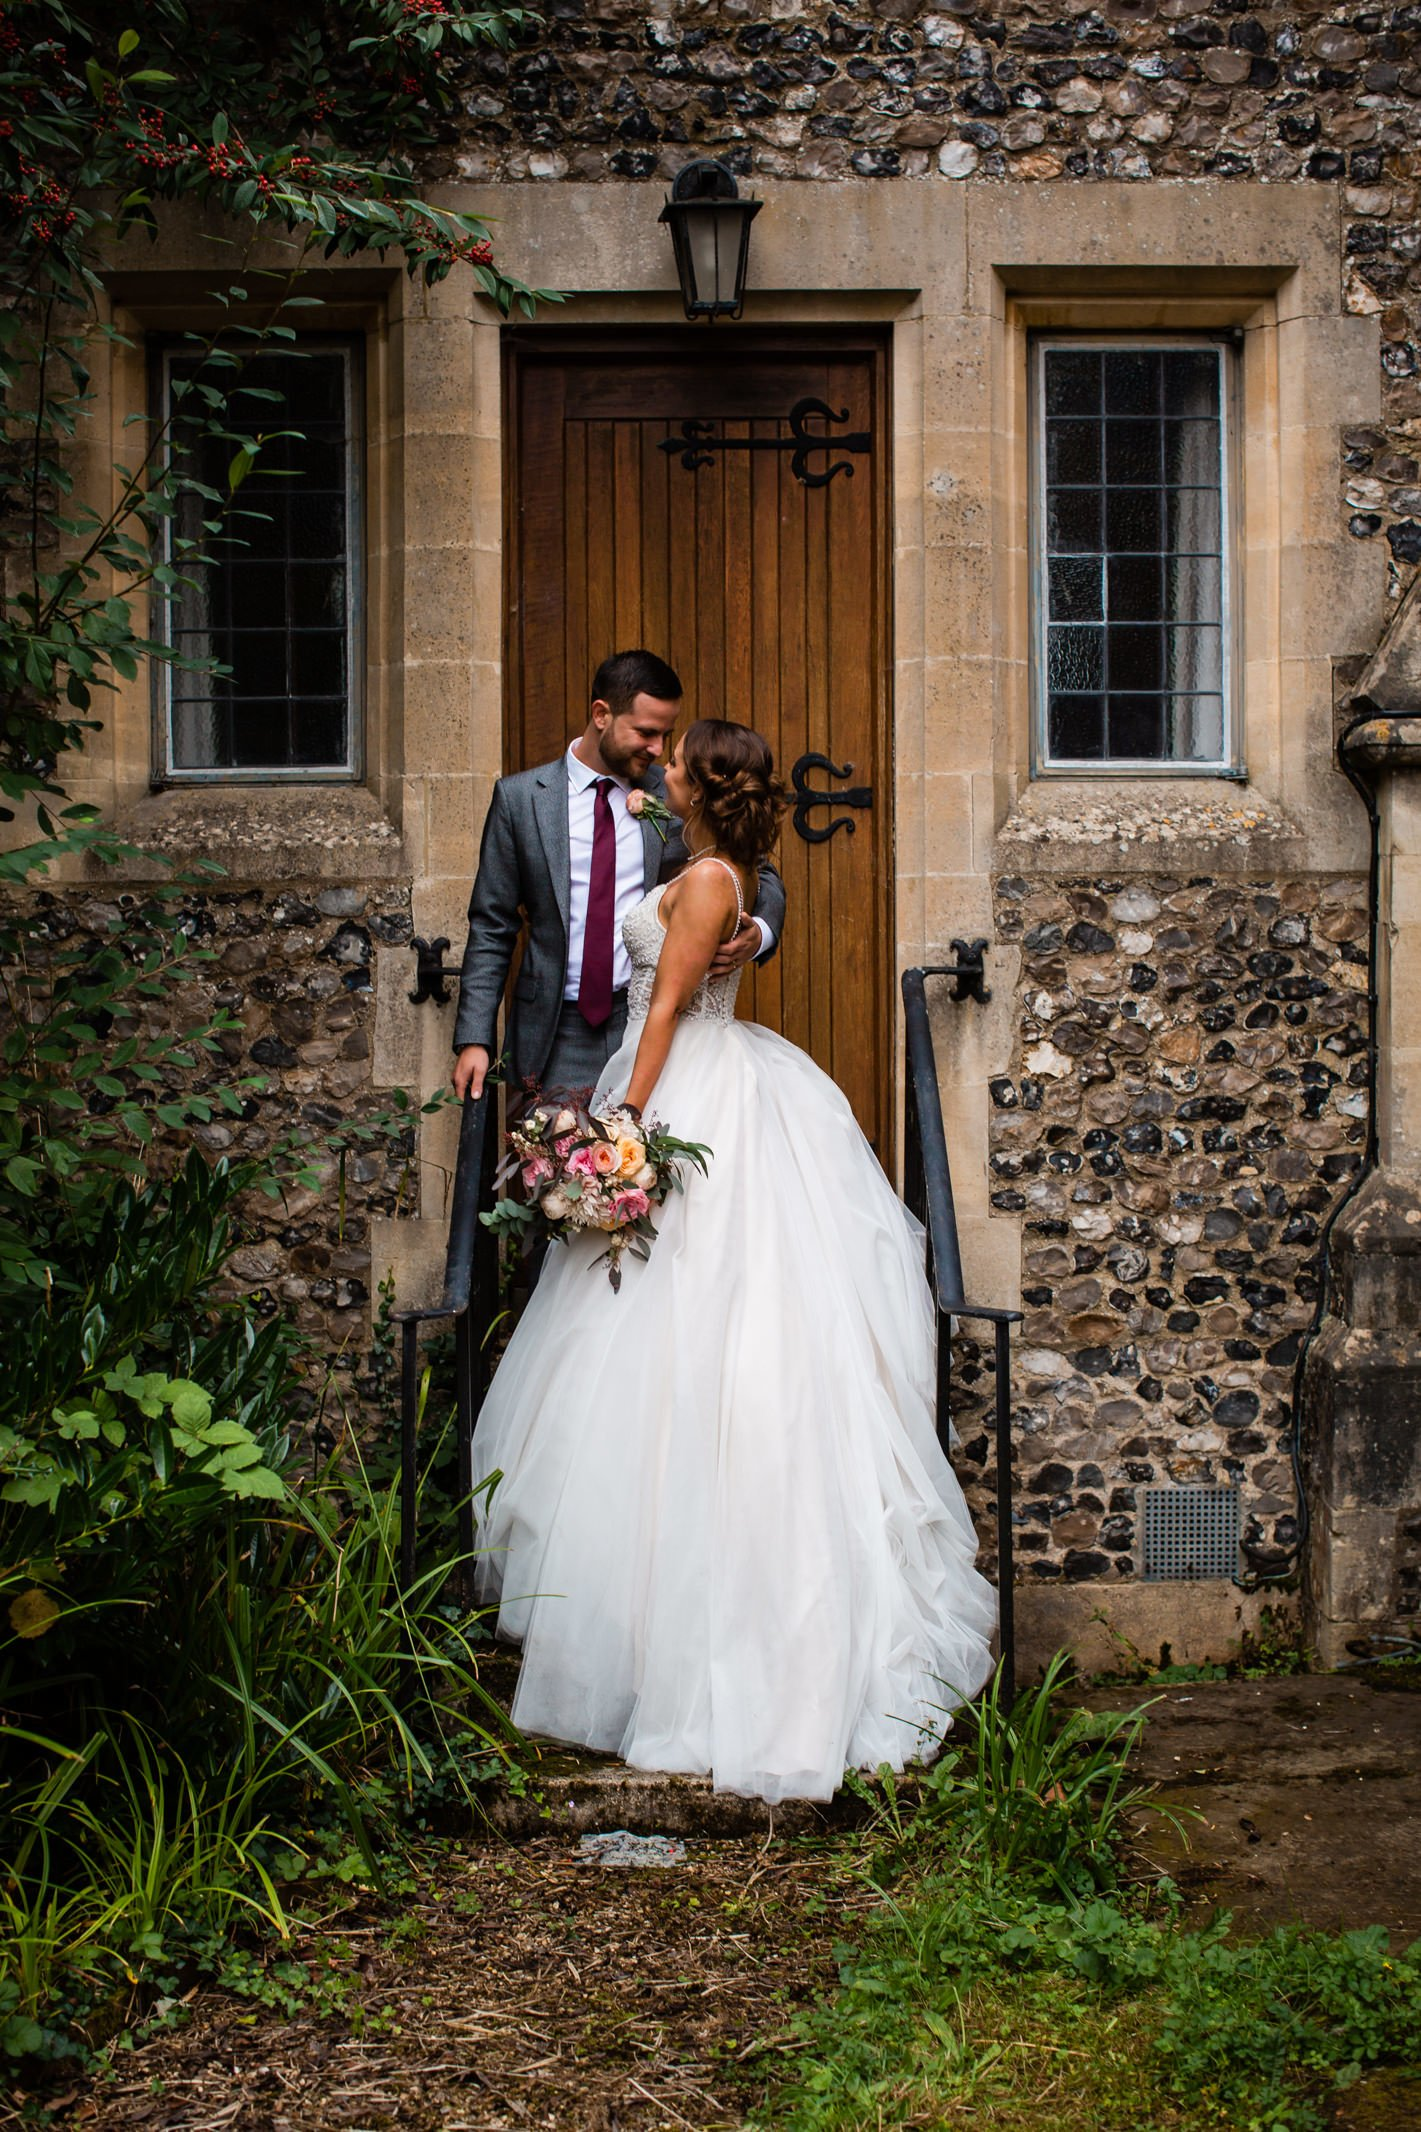 The Elephant Pangbourne Wedding - Stunning Kayleigh & Shane 61